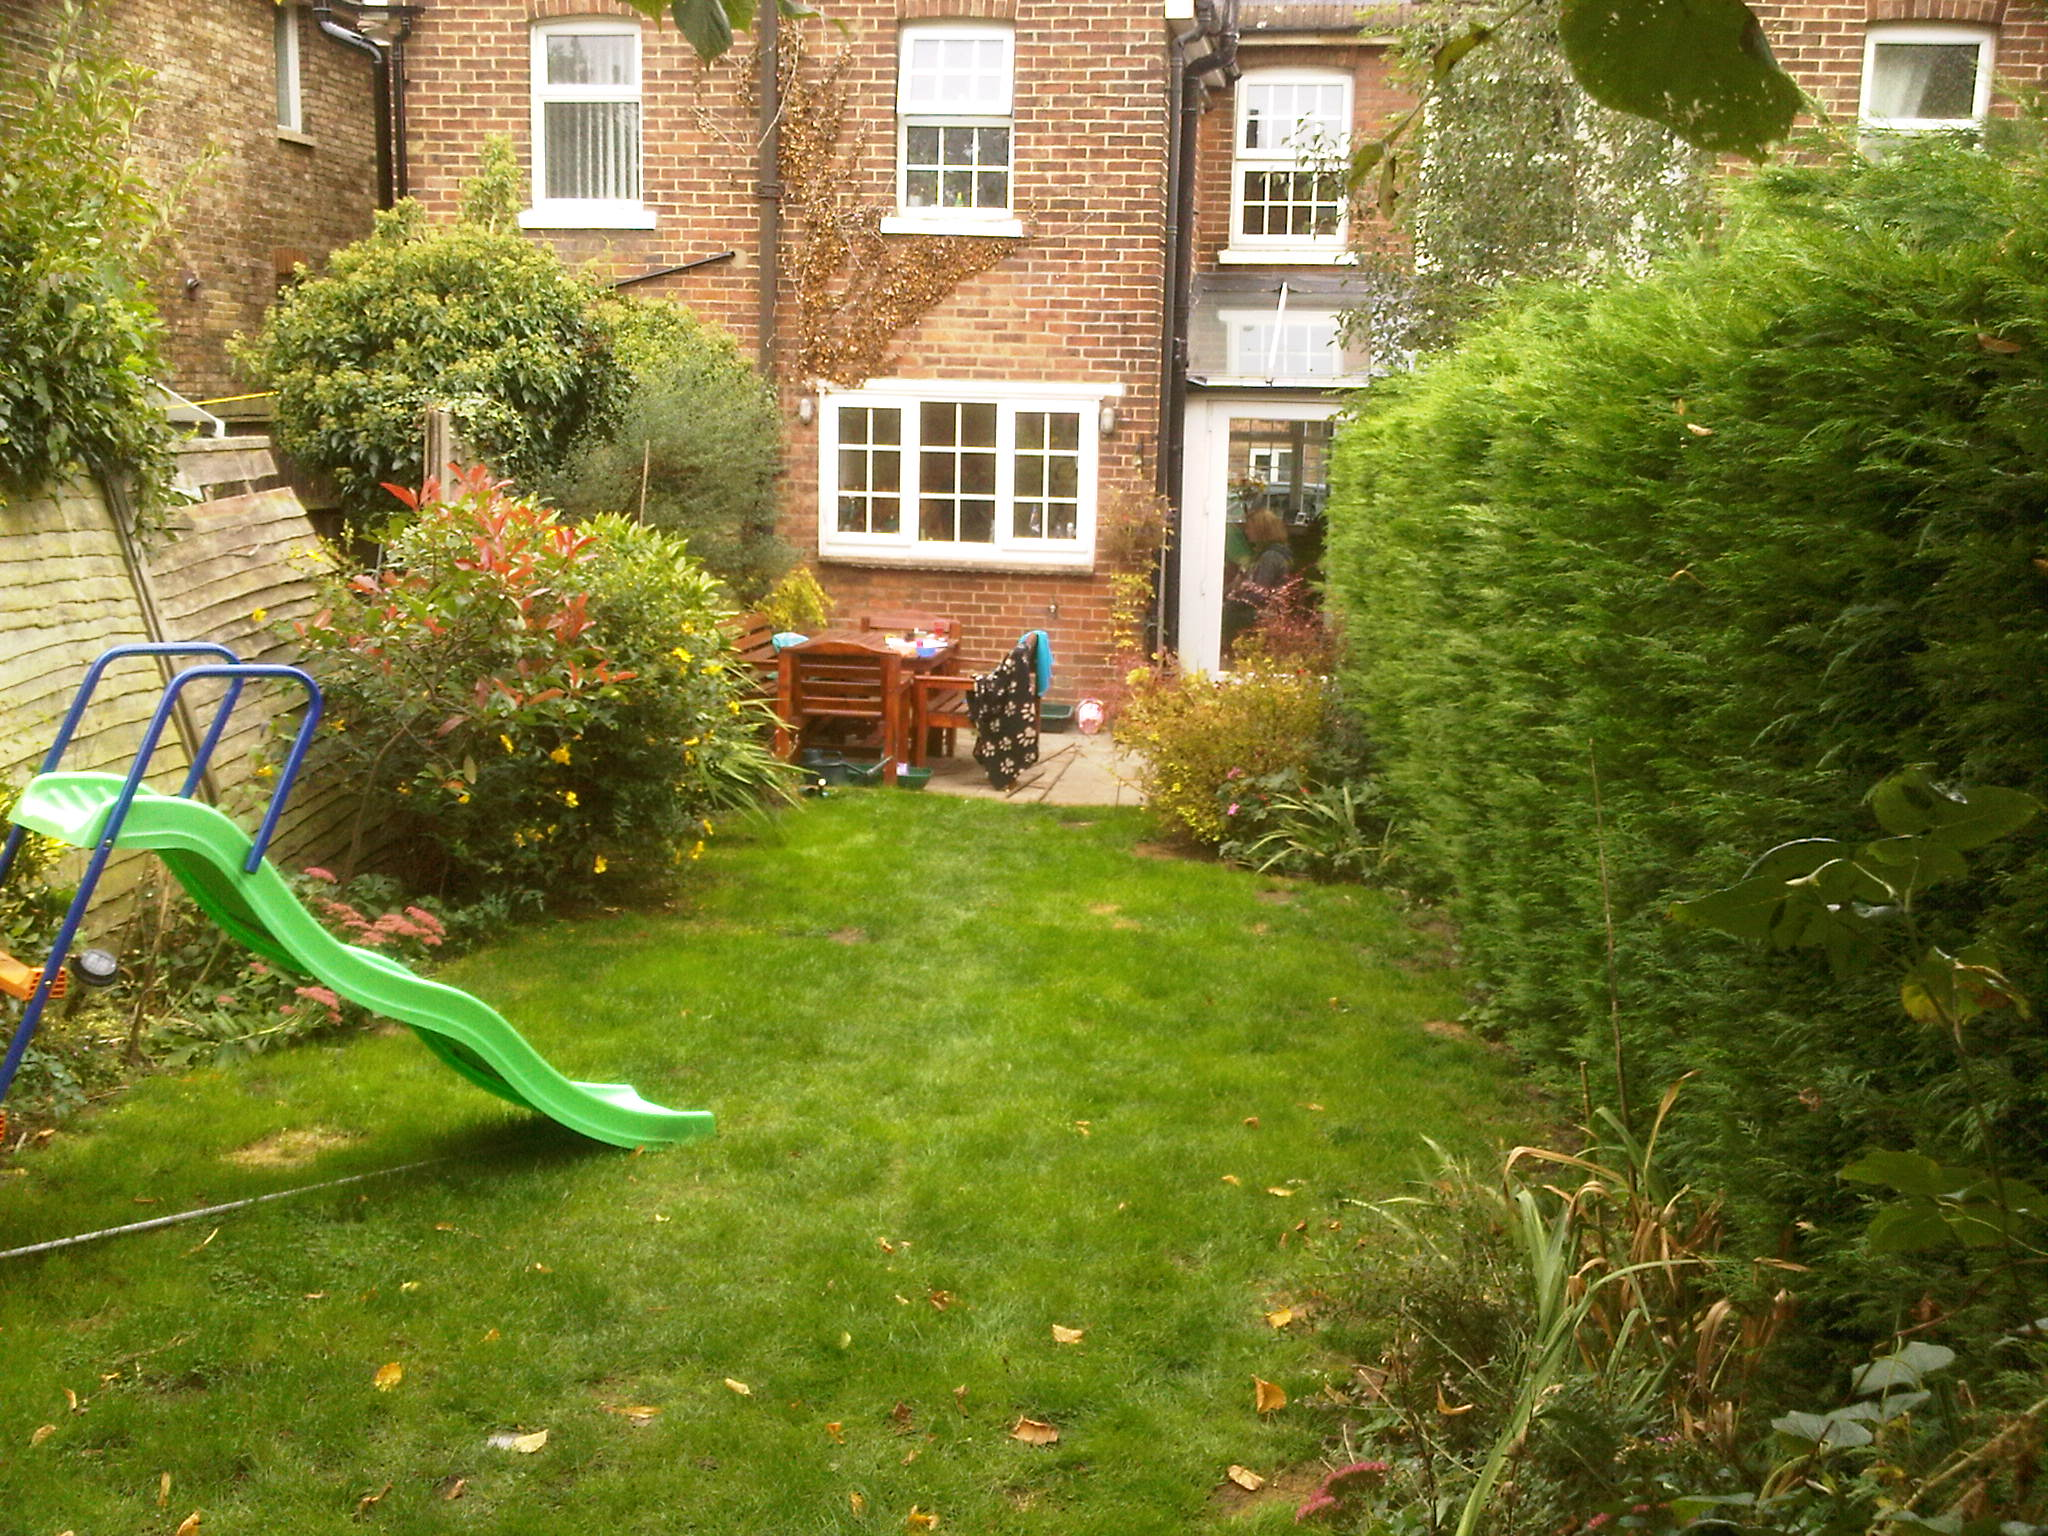 London garden design sevenoaks a modern family garden earth designs garden design and build - Garden ideas london ...